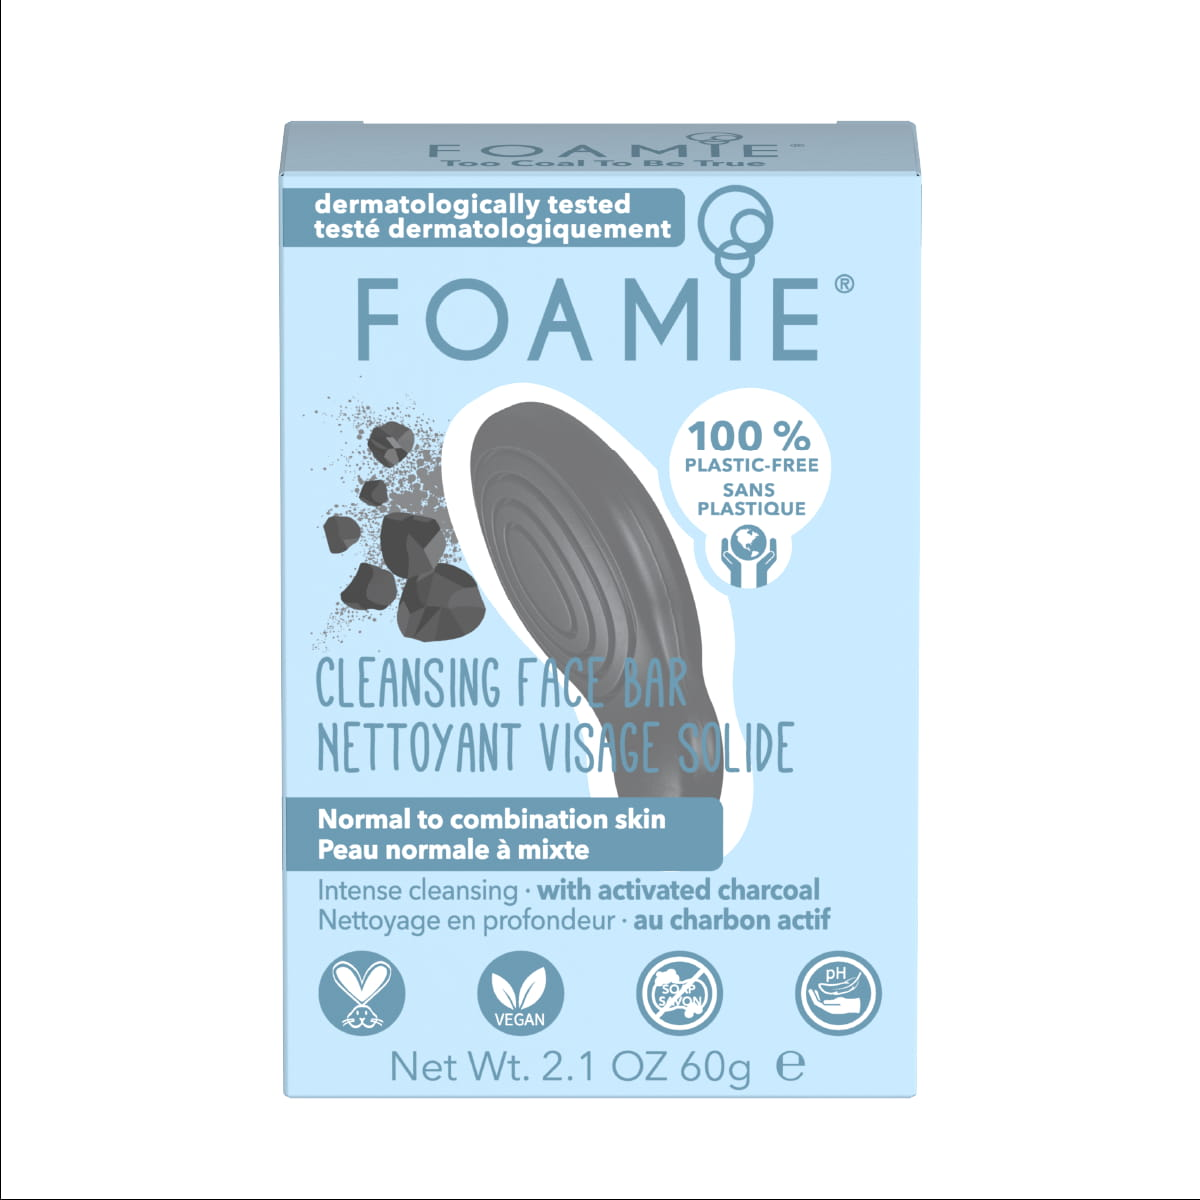 Foamie Nettoyant Visage solide - Too Coal To Be True